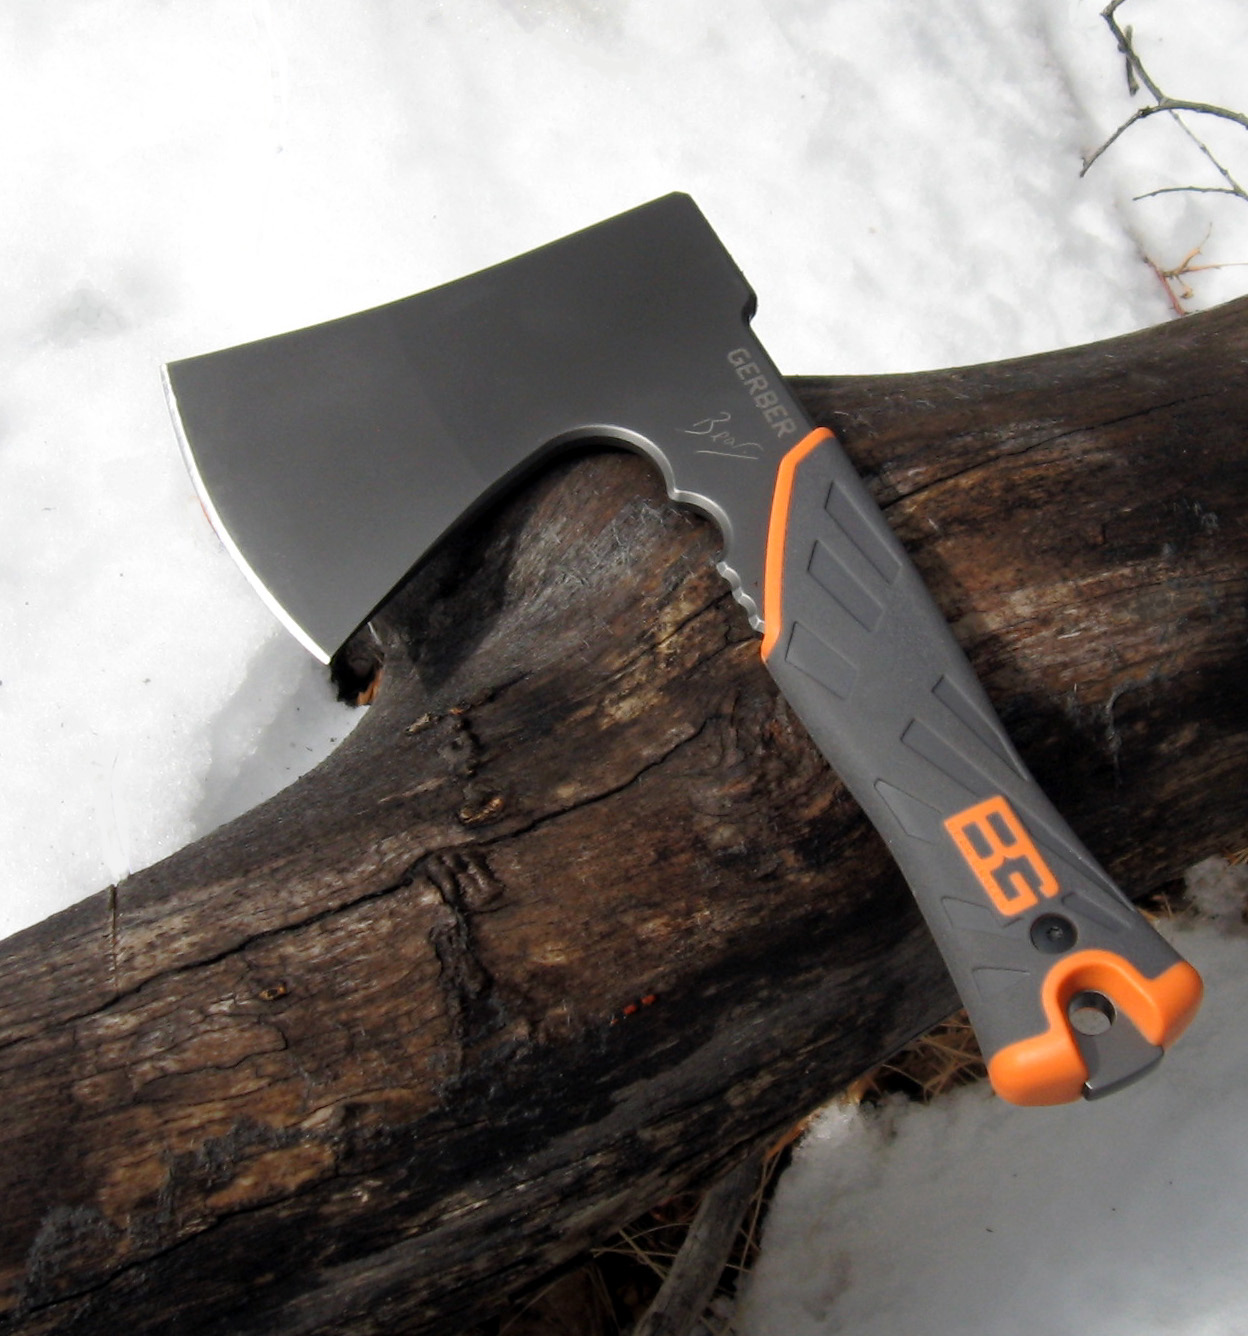 Survival Ax Rocky Mountain Bushcraft Review The Gerber Bear Grylls Survival